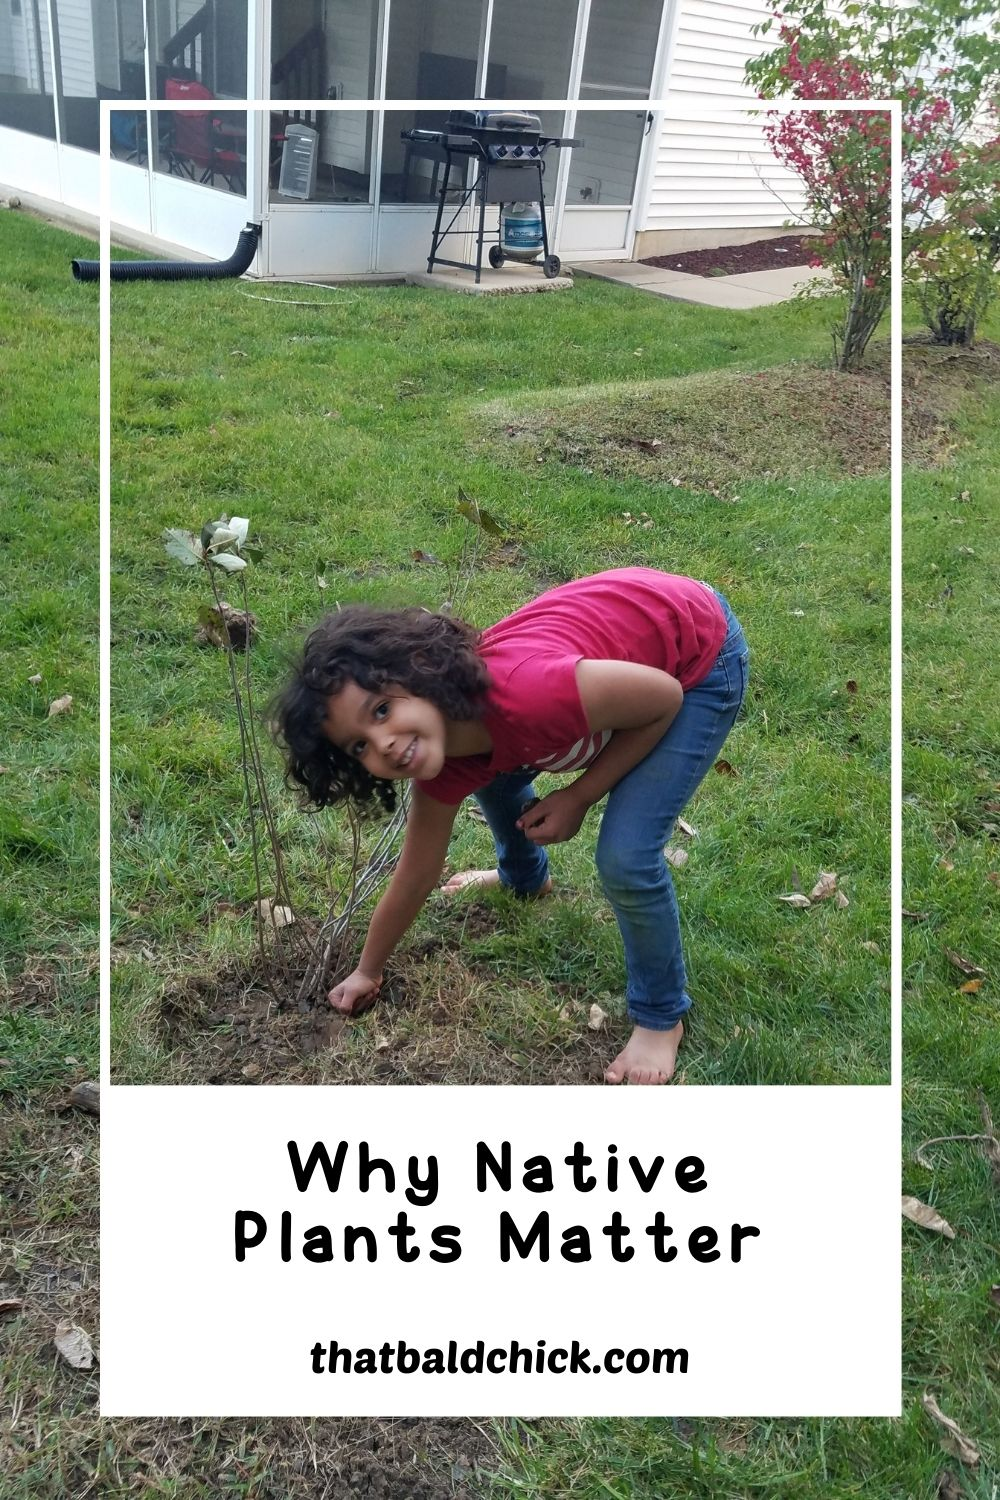 Why Native Plants Matter